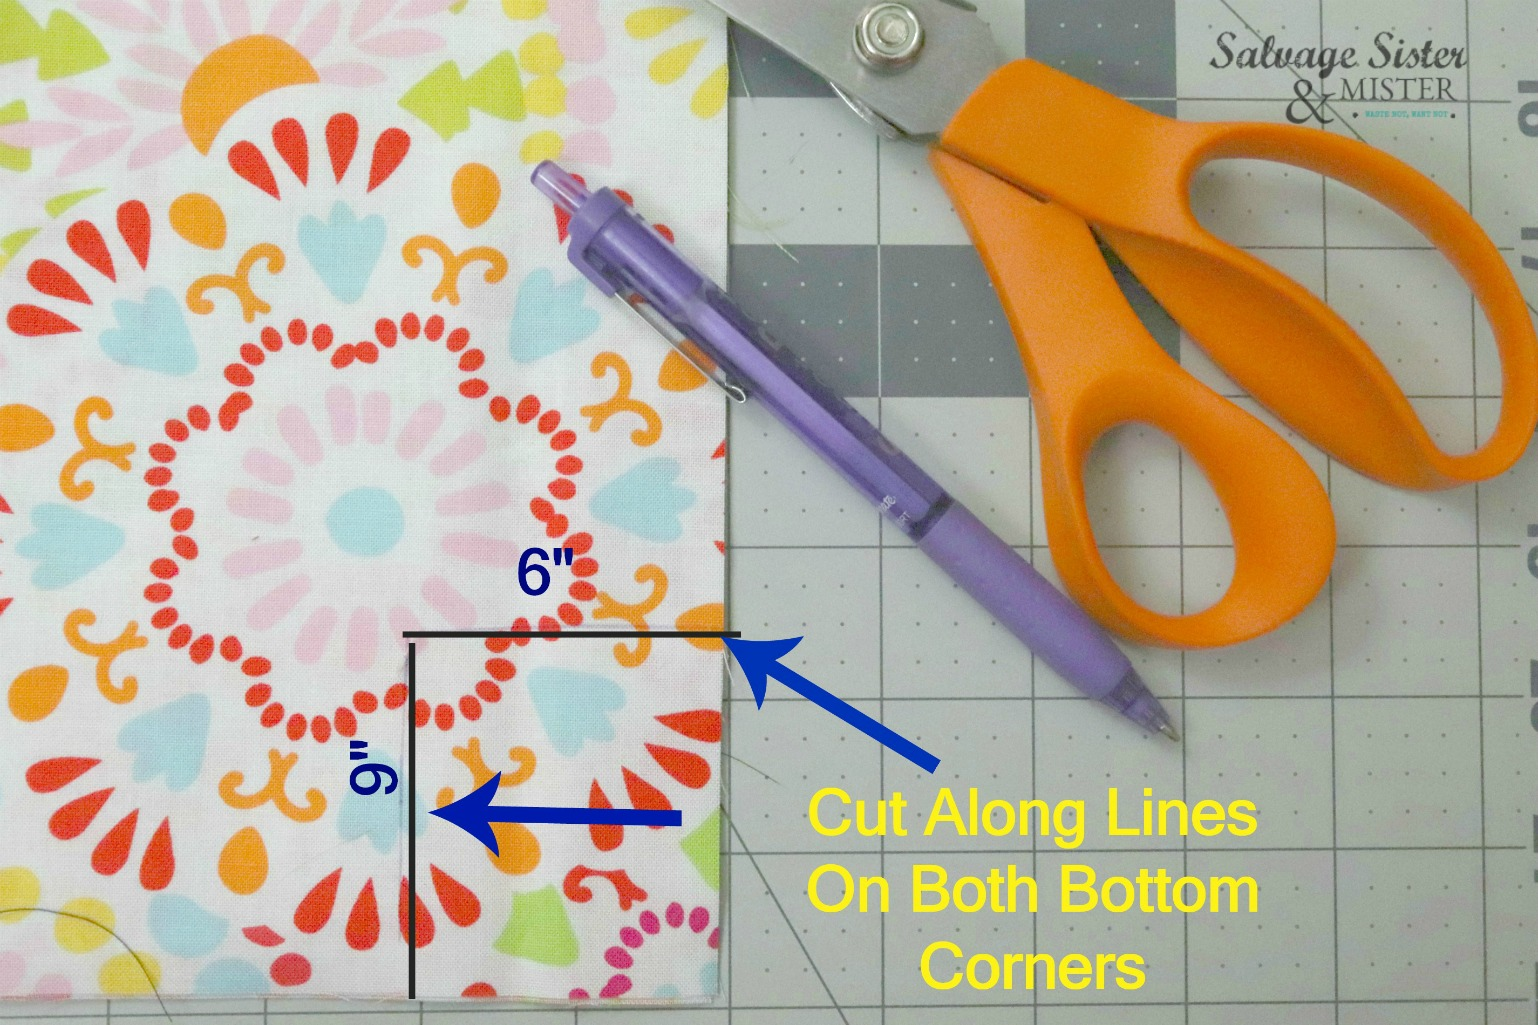 sewing tutorial on salvagesisterandmister.com